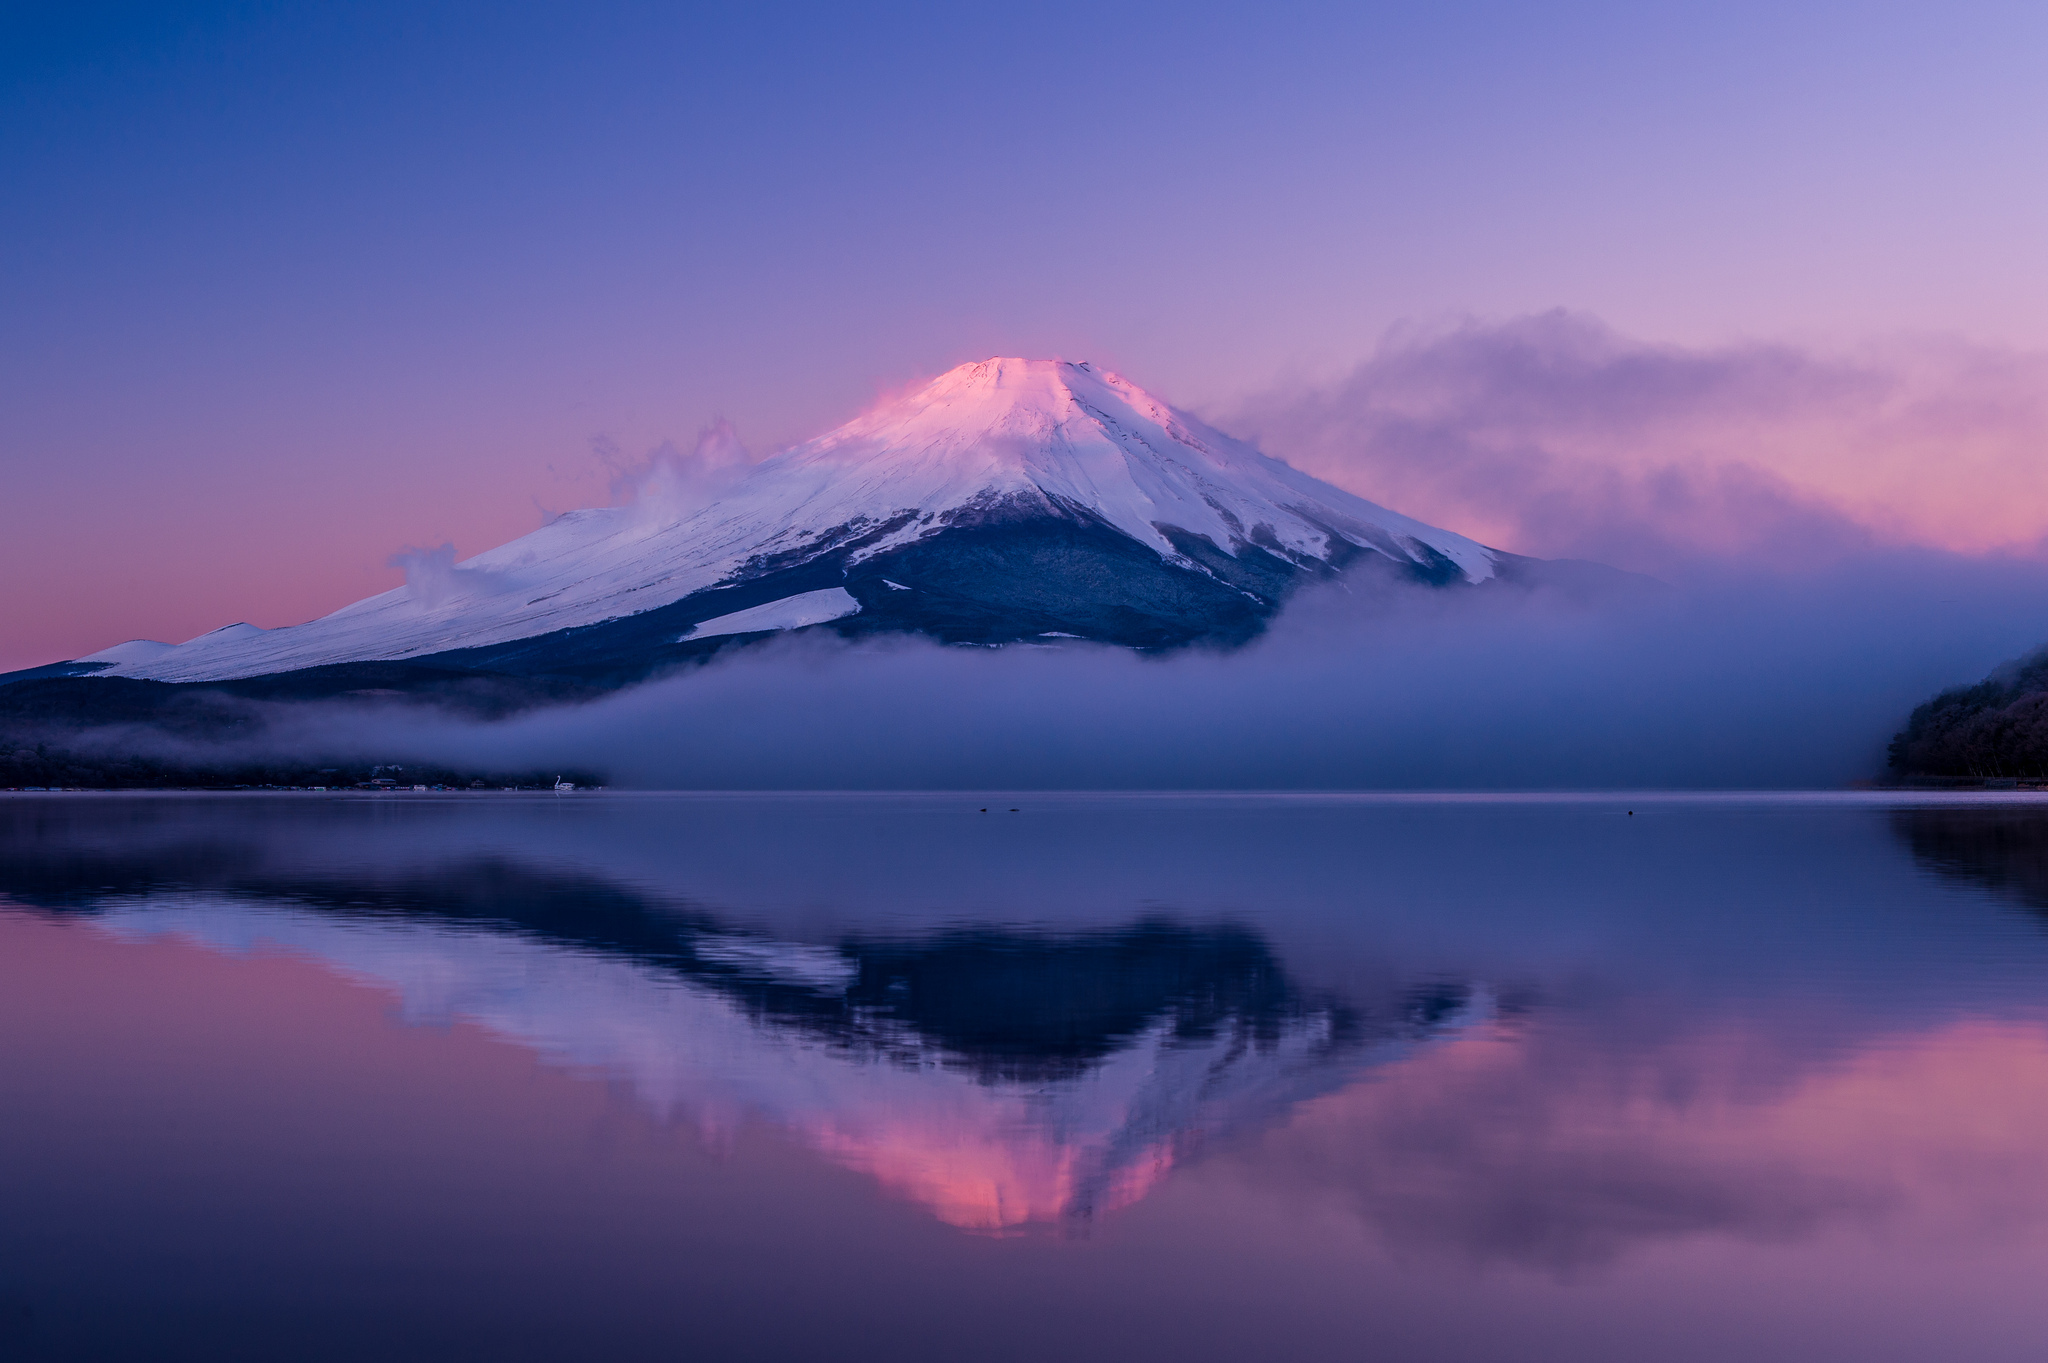 Mount Fuji Computer Wallpapers Desktop Backgrounds 2048x1363